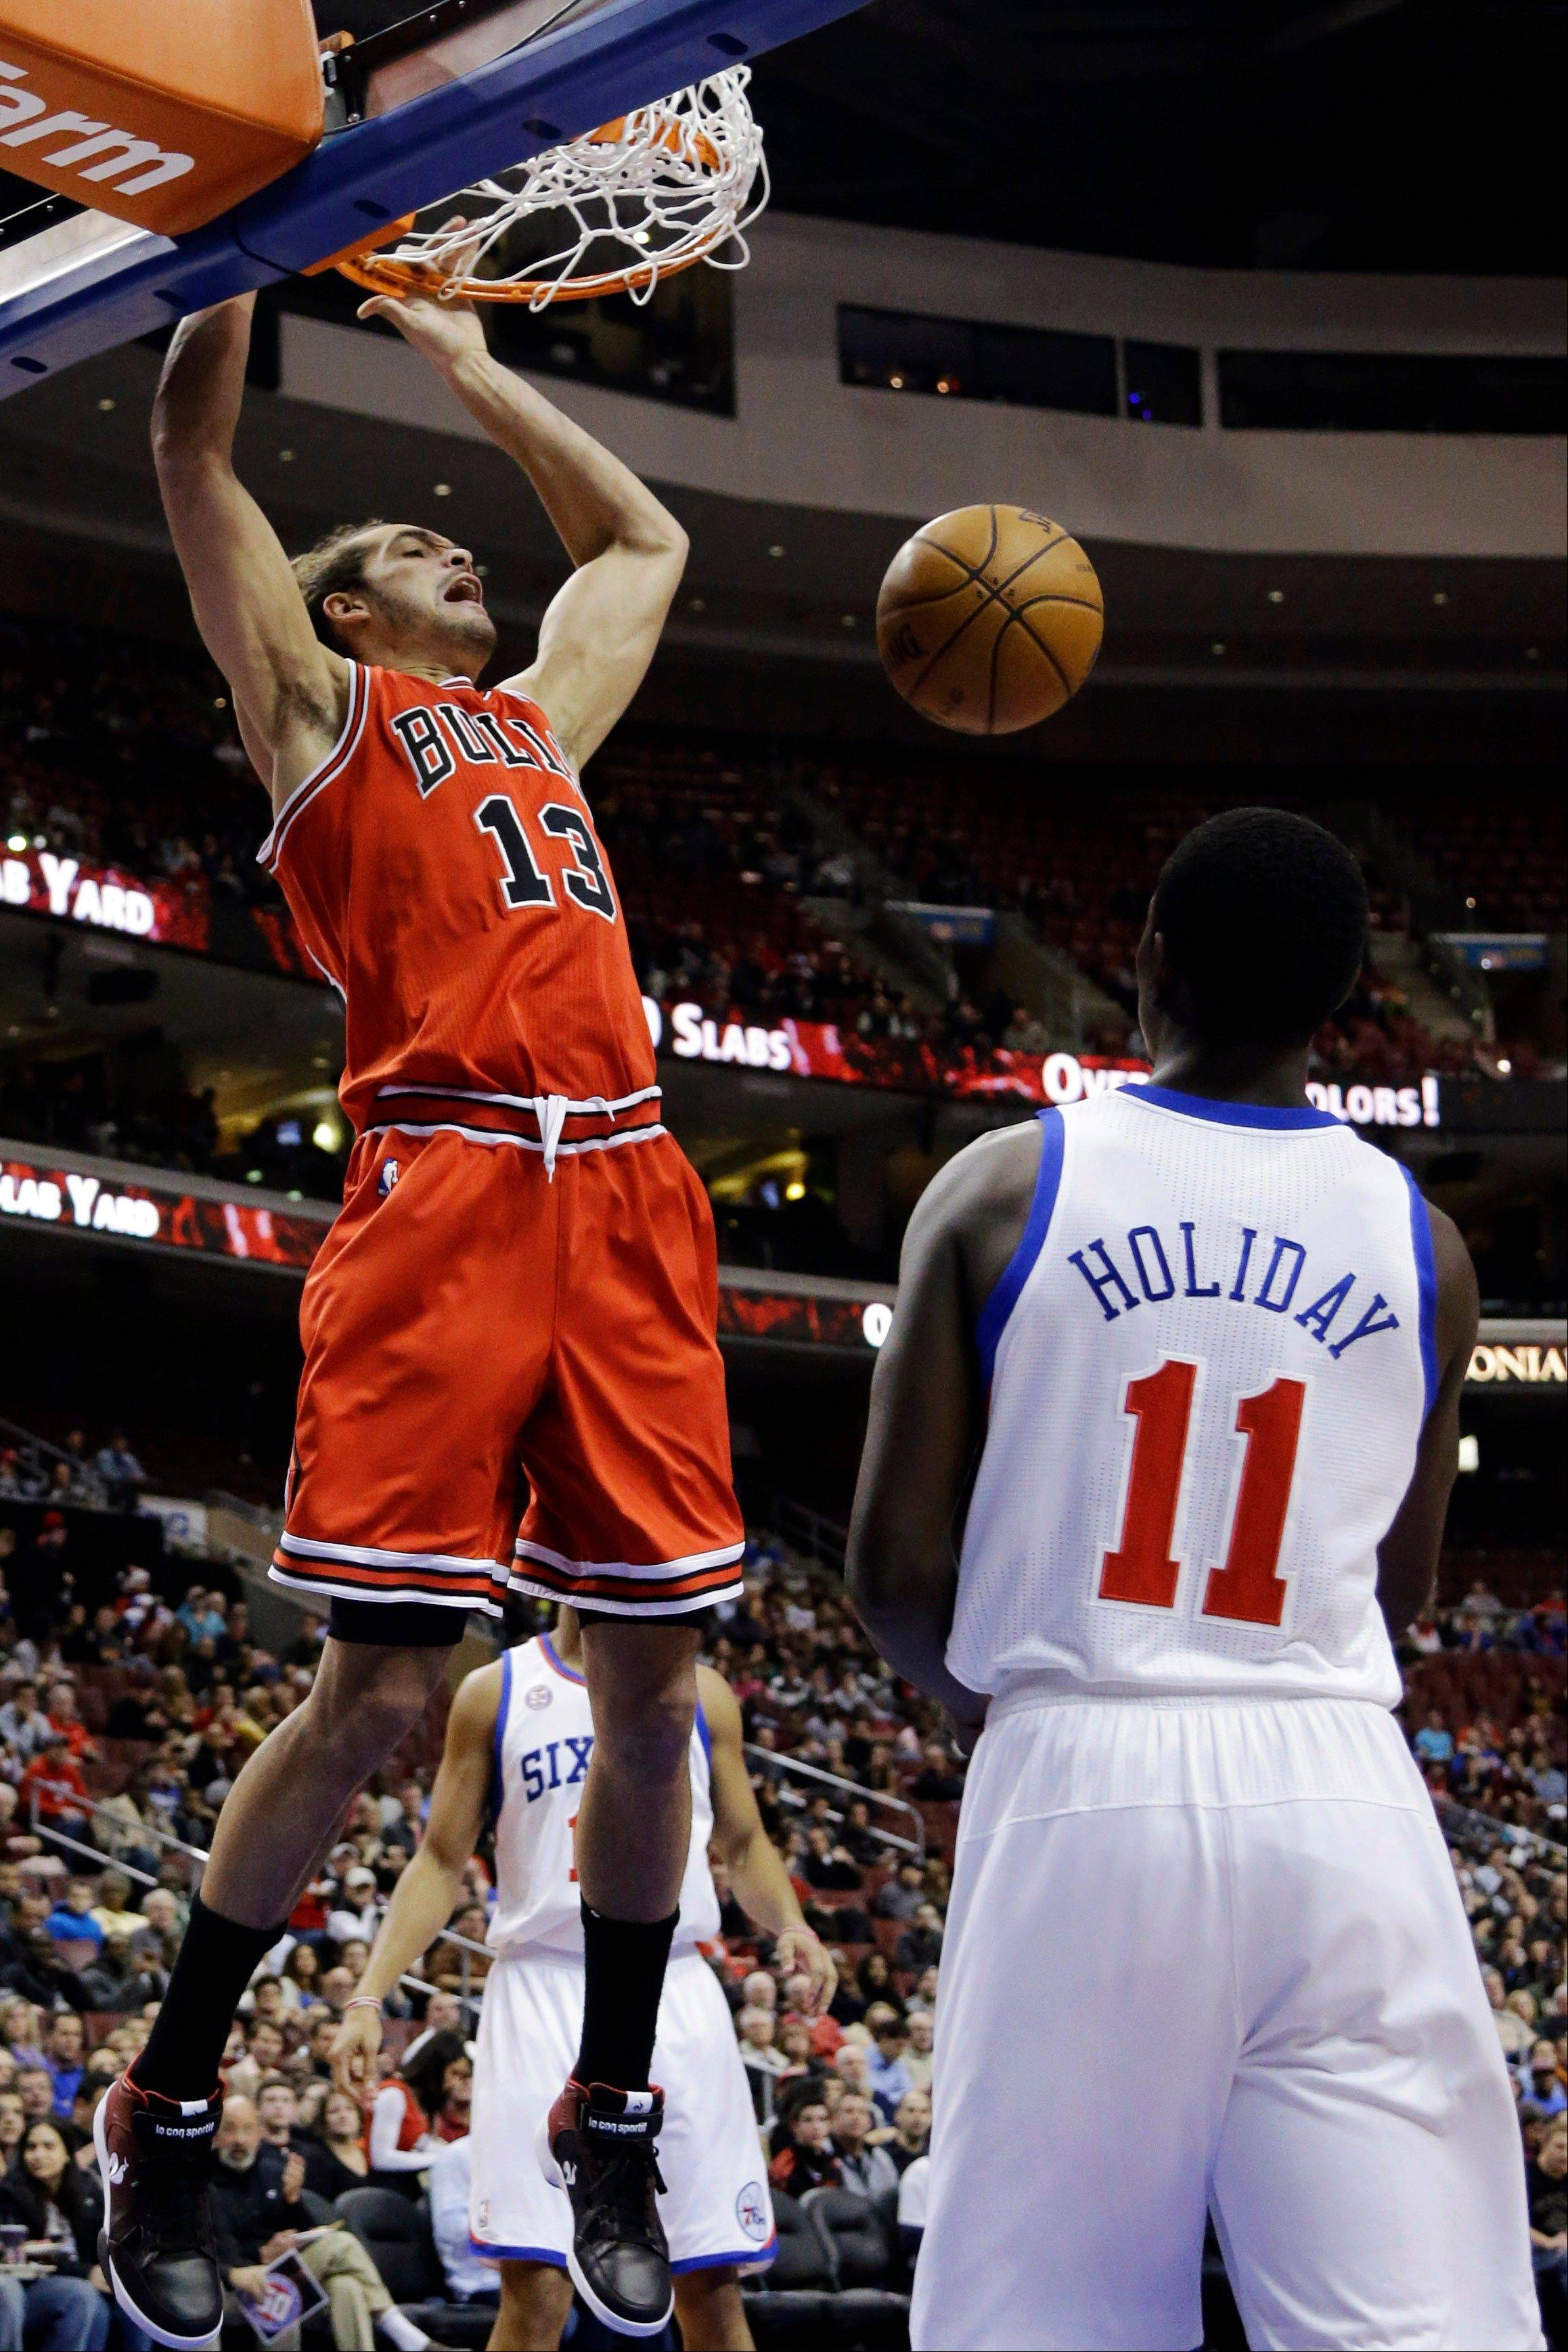 Chicago Bulls� Joakim Noah (13) dunks the ball as Philadelphia 76ers� Jrue Holiday (11) watches during the first half of an NBA basketball game, Wednesday, Dec. 12, 2012, in Philadelphia. (AP Photo/Matt Slocum)